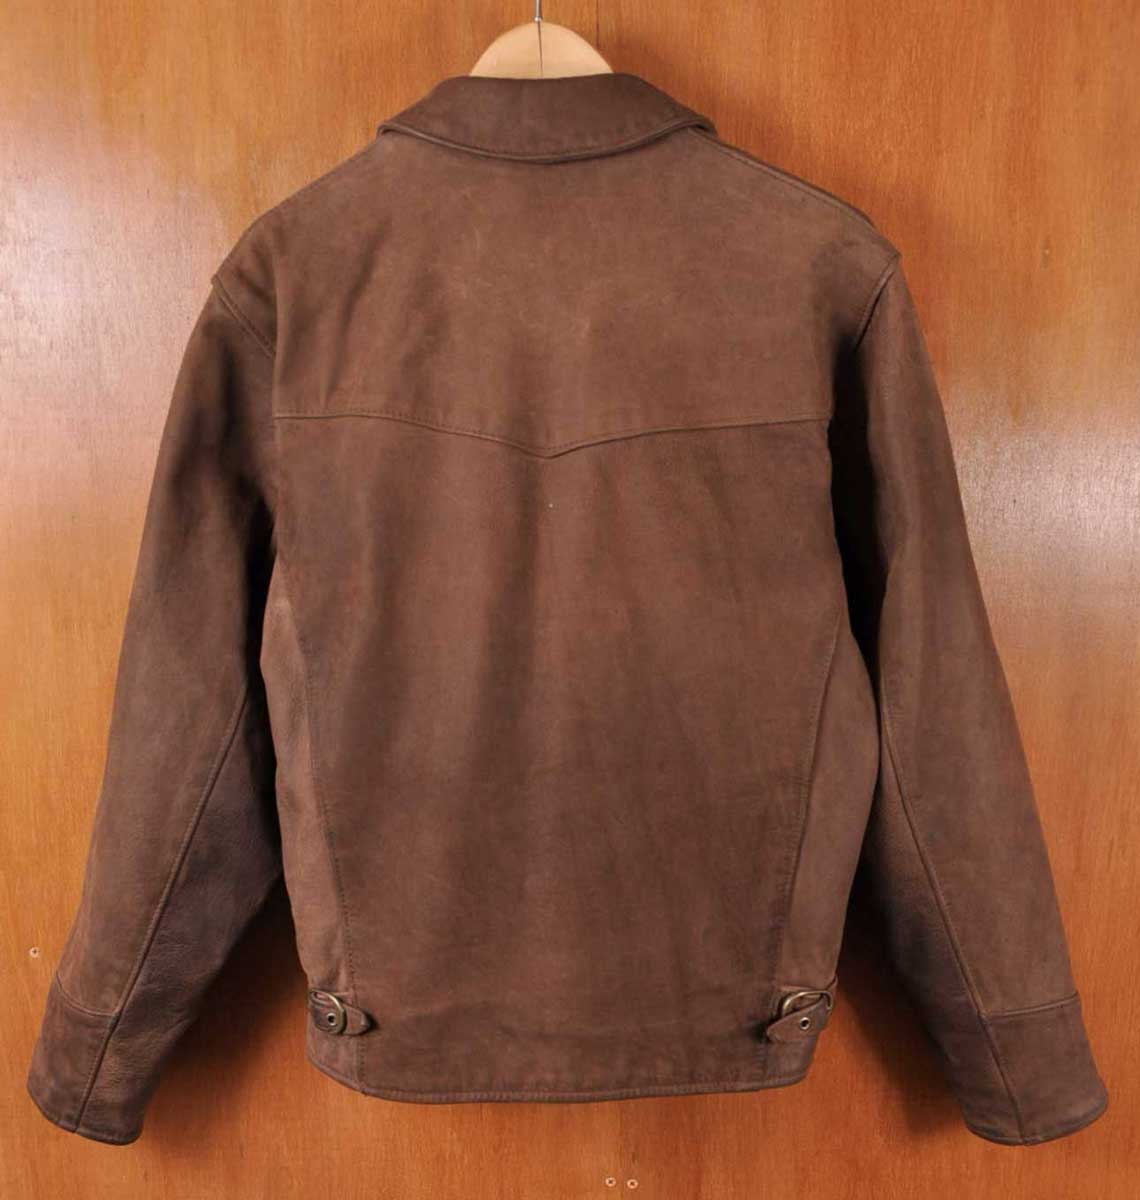 e1306b4484a98 ... Made in USA   SCHOTT shot   Tracker jacket nubuck leather jacket and  wool check liner ...